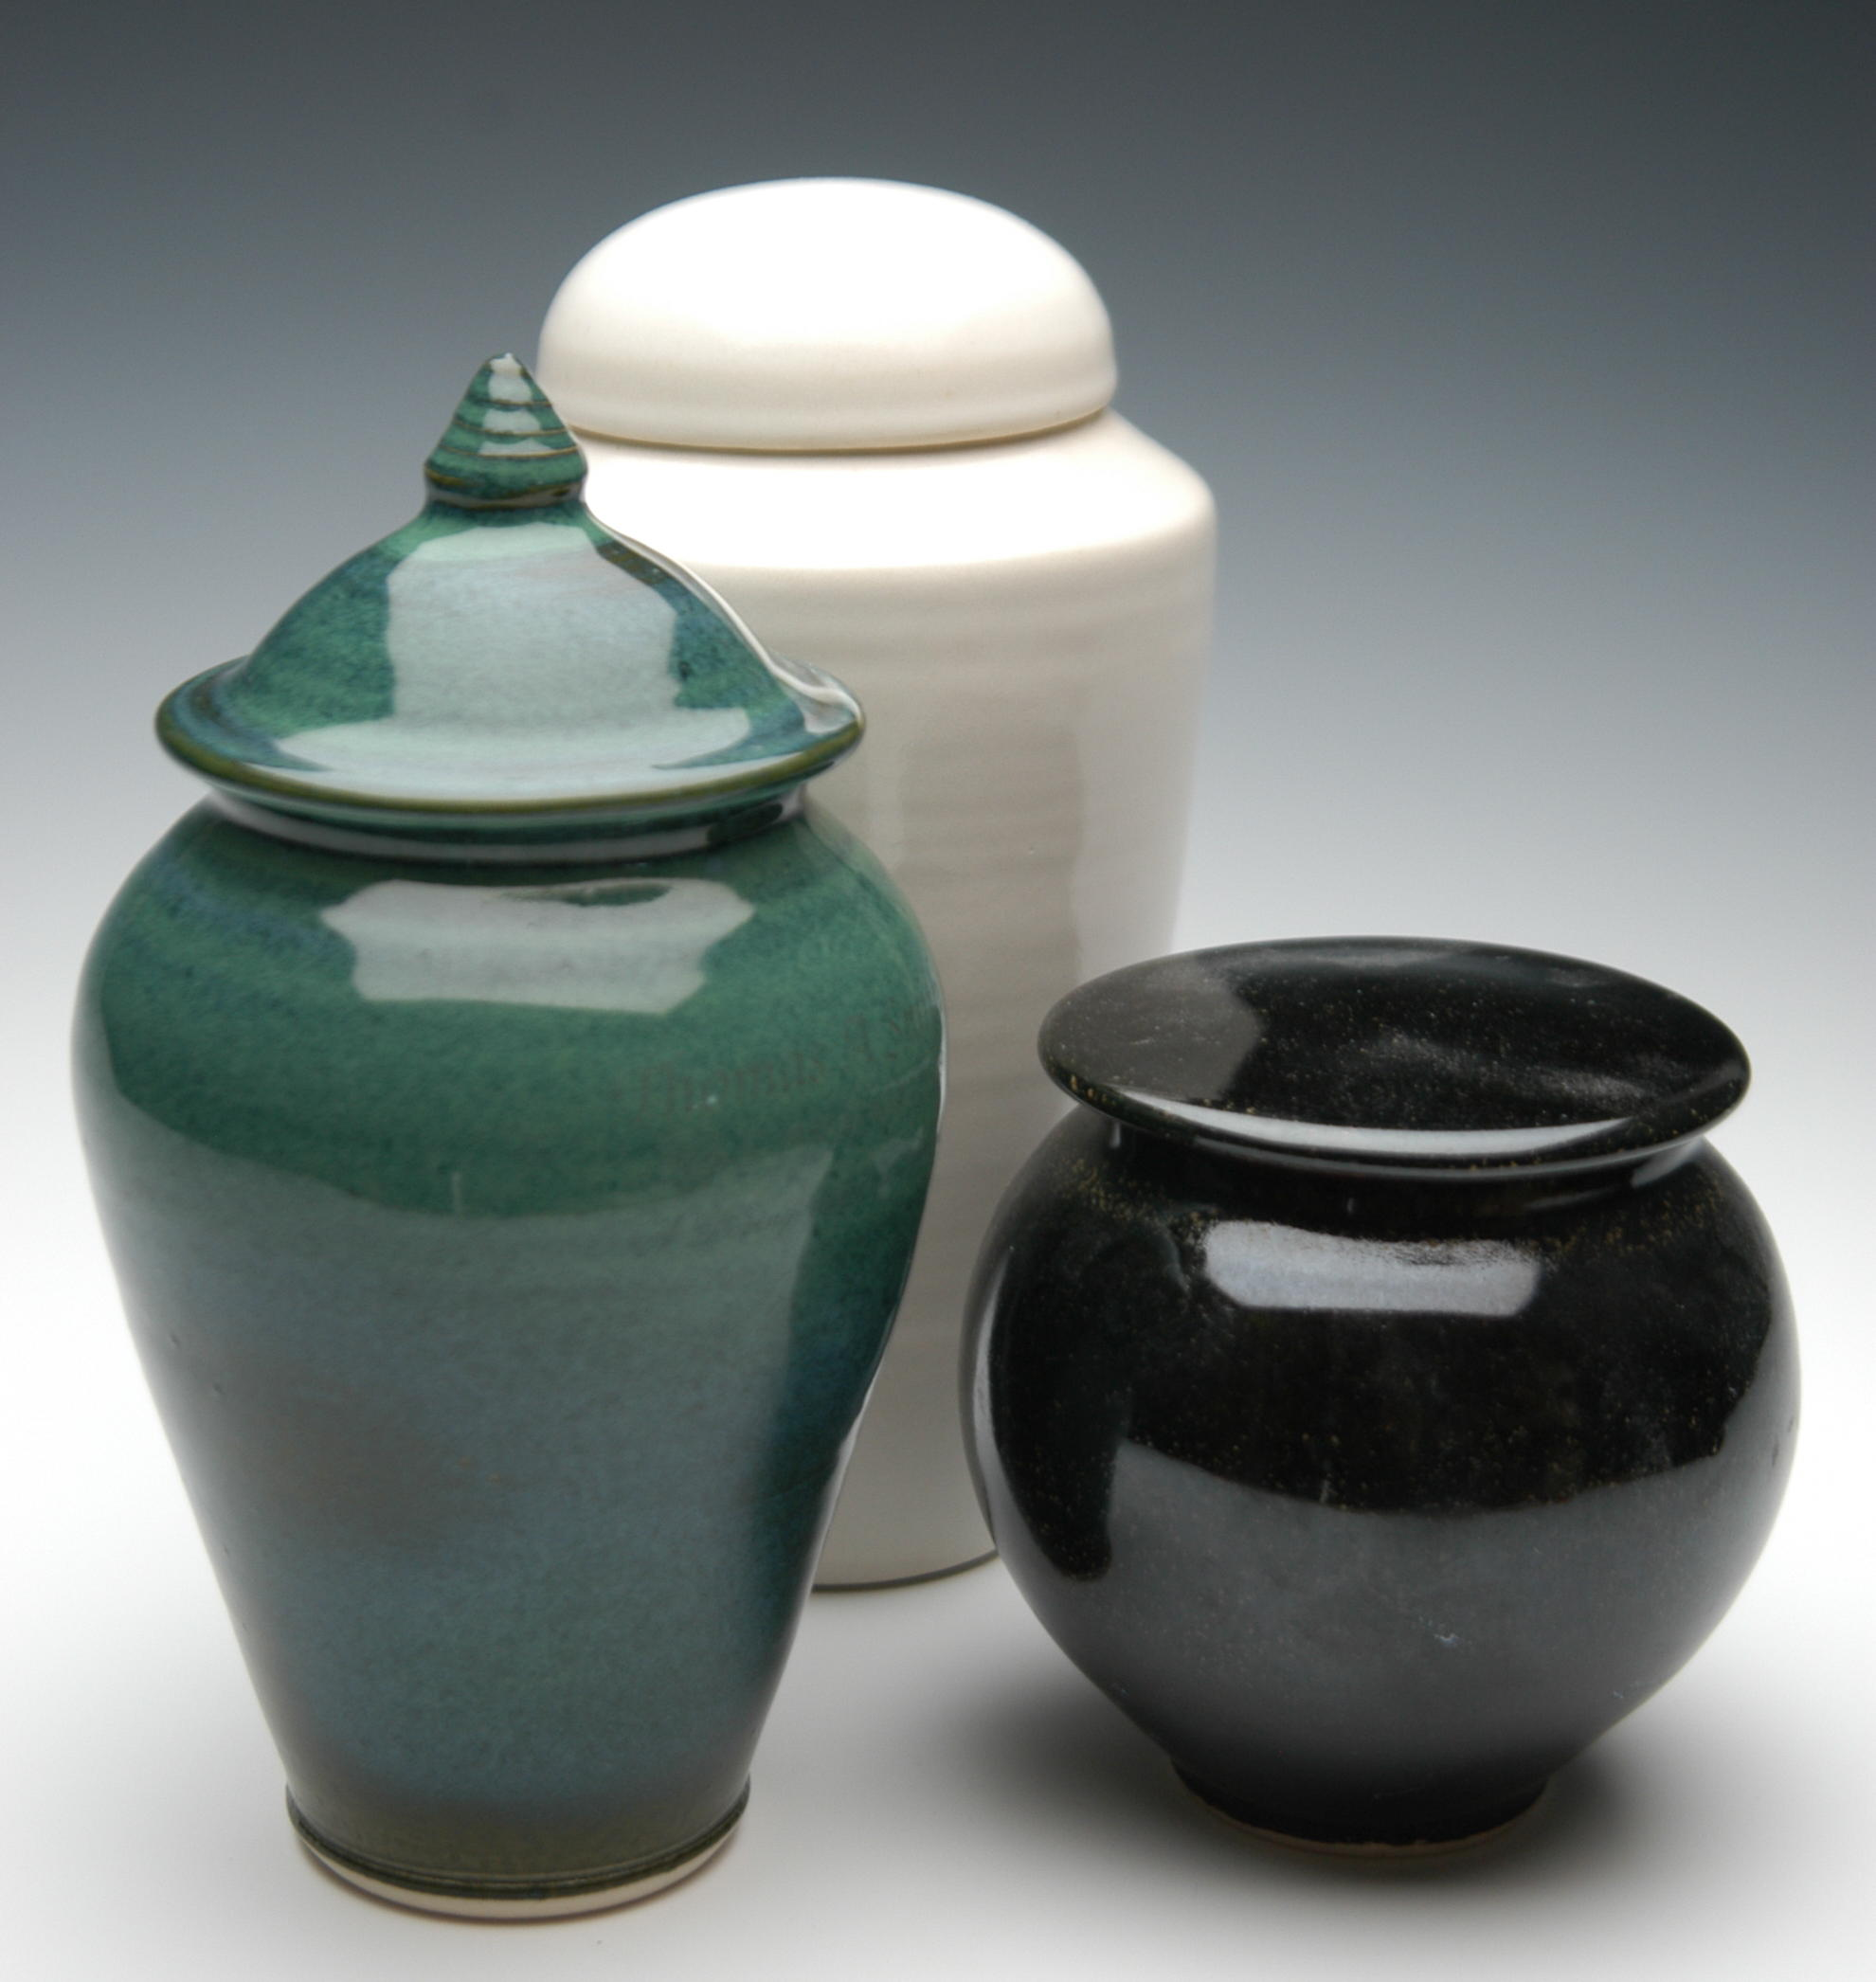 Plain ceramic urns